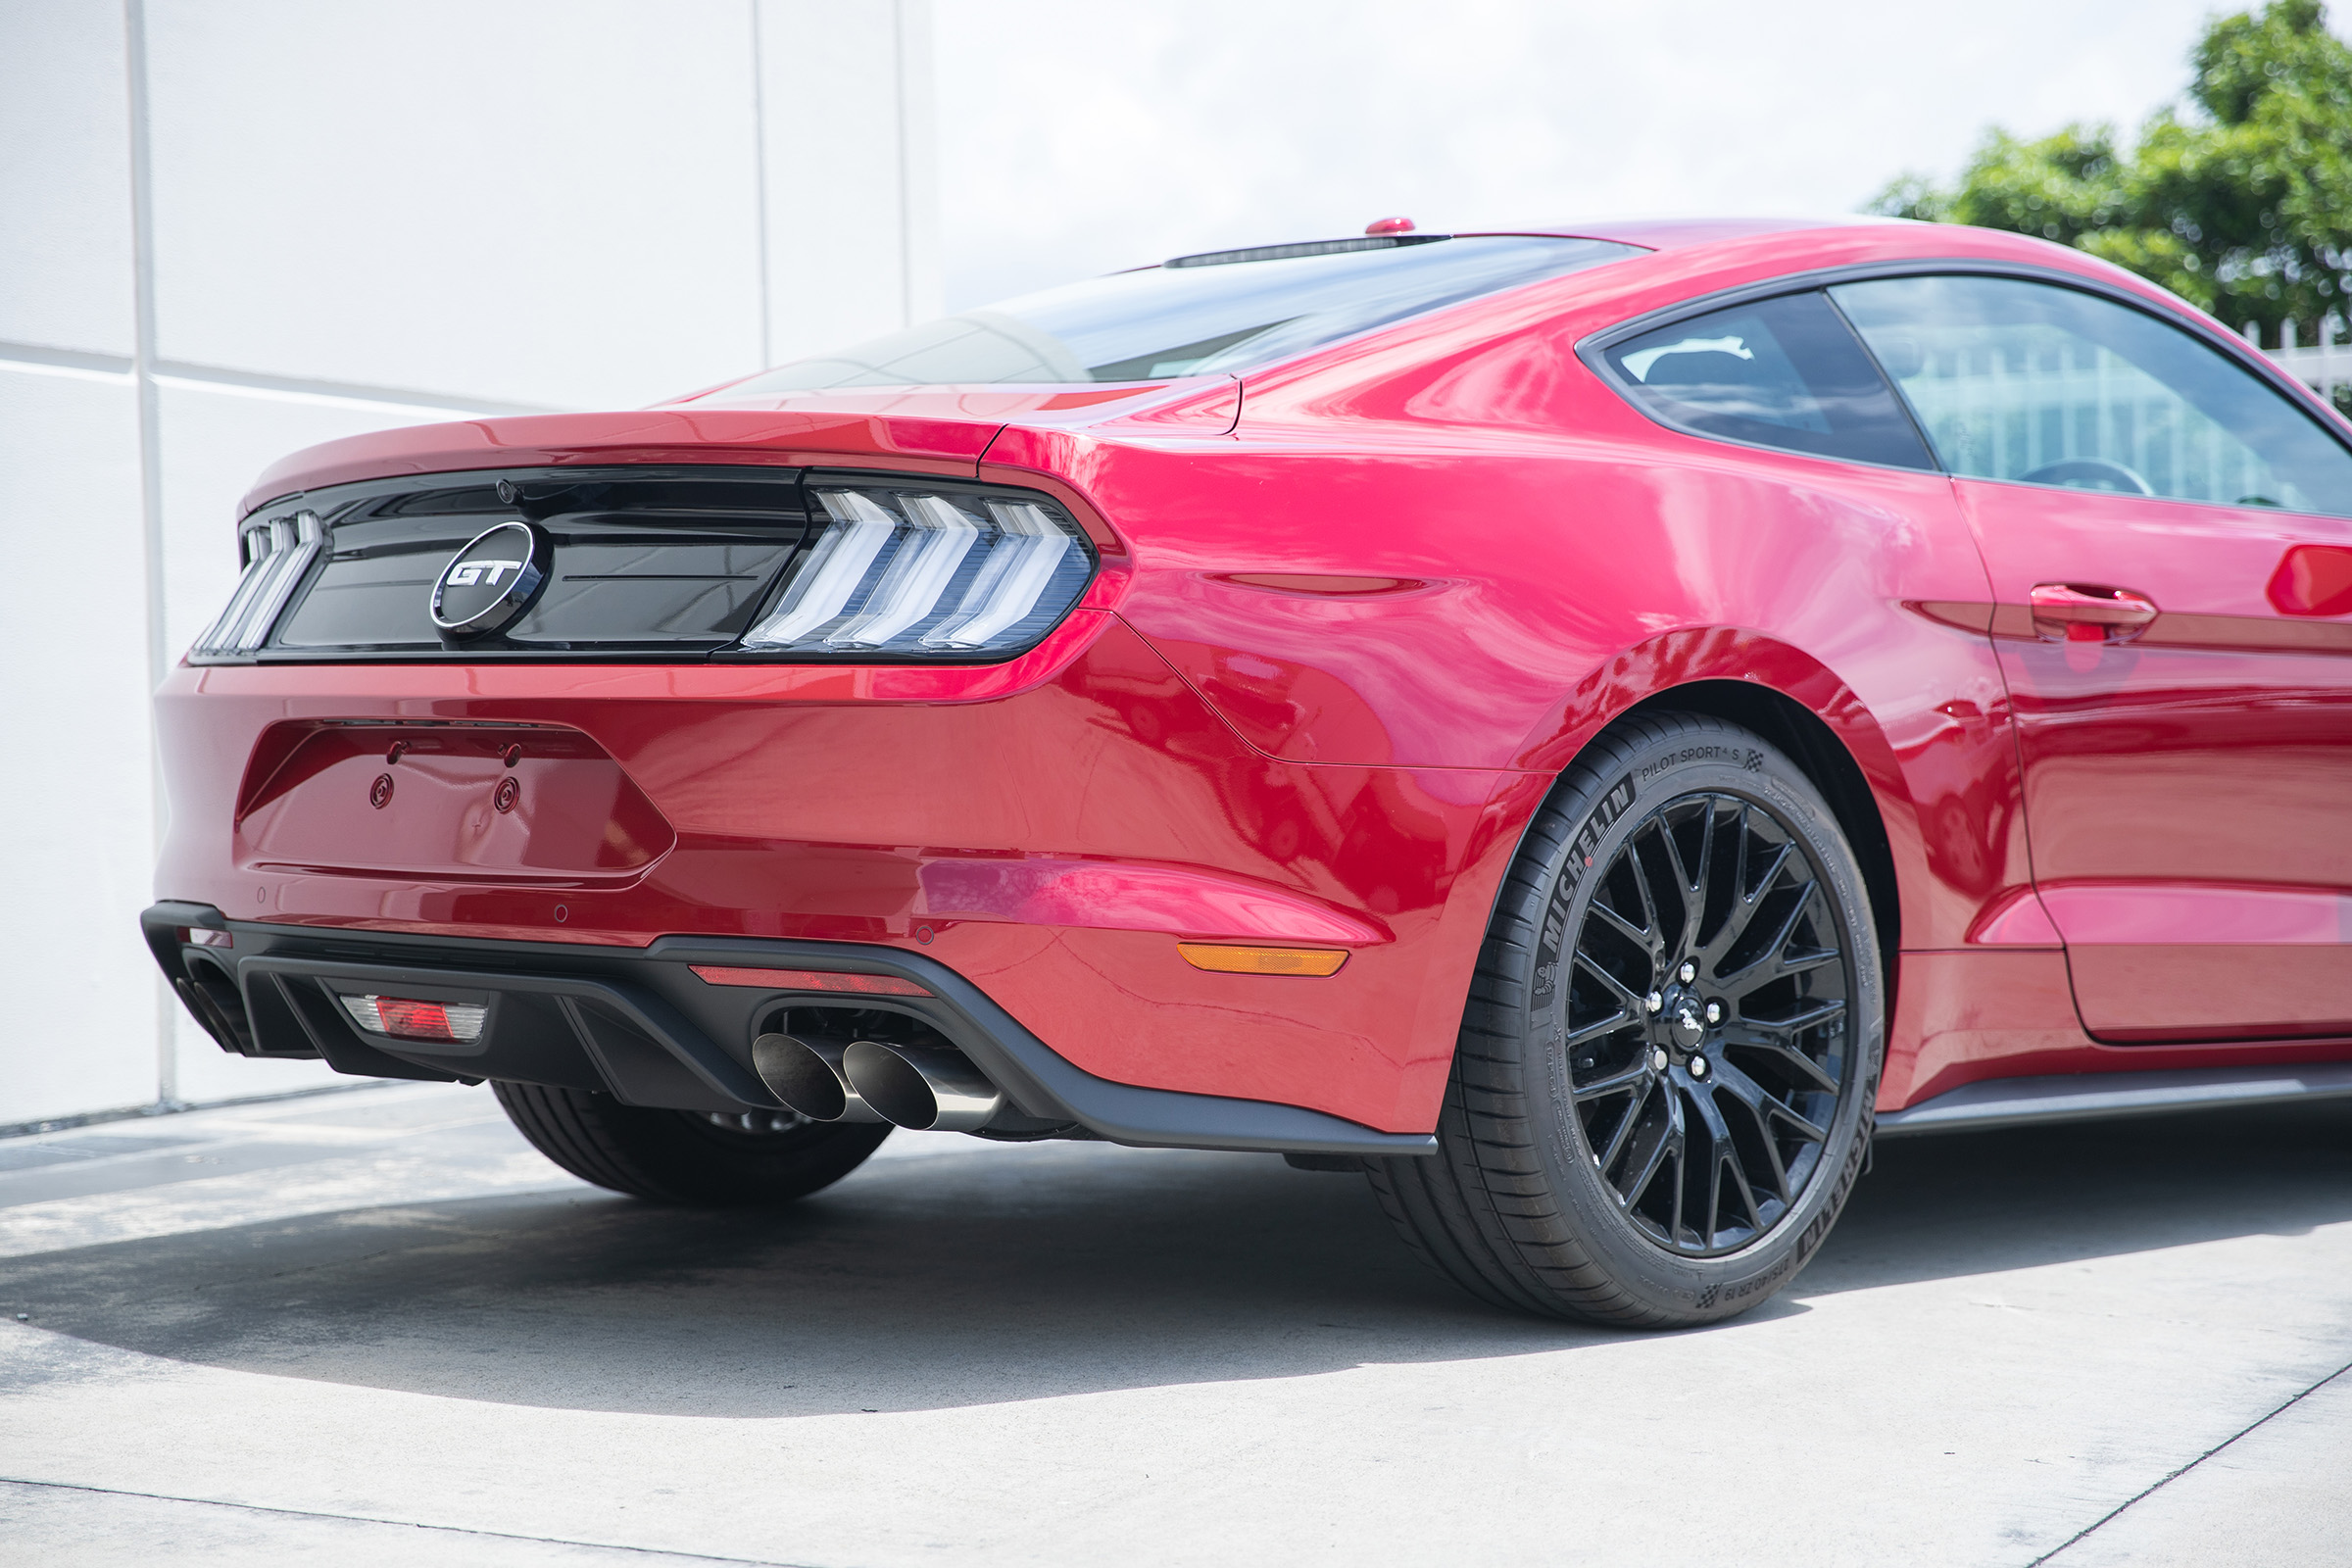 The unique combination of classic style and advanced technology have long been the hallmark of the Mustang